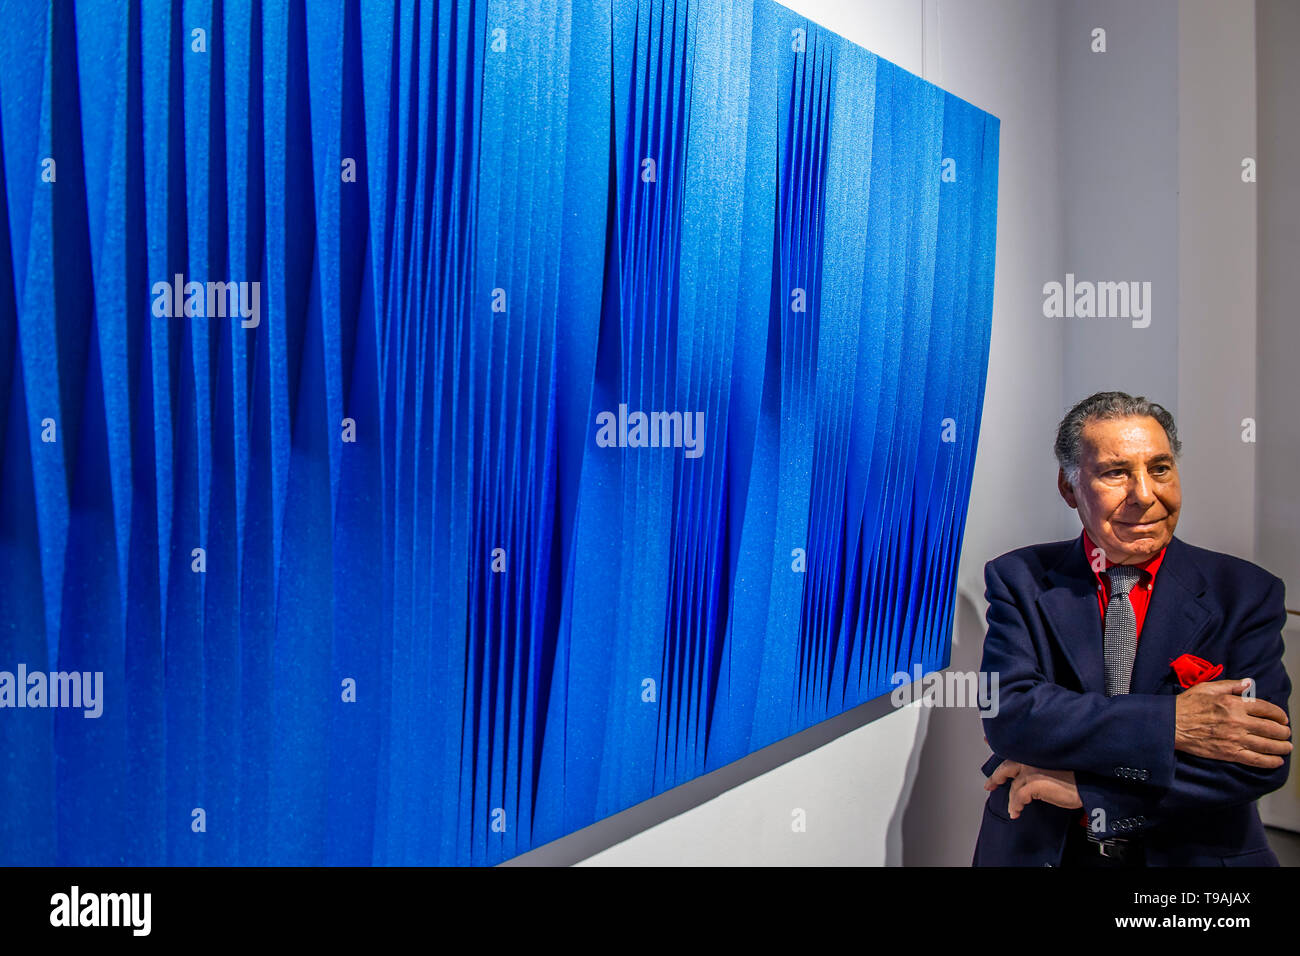 London, UK. 17th May 2019. Sincronicita azzurro blu iridescente, 2018 by Pino Manos (pictured) - Spaziale! at Opera Gallery London. Organised in collaboration with the Italian Embassy in London, the exhibition includes 40 iconic canvases by Lucio Fontana, Agostino Bonalumi and Enrico Castellani among others. Credit: Guy Bell/Alamy Live News - Stock Image